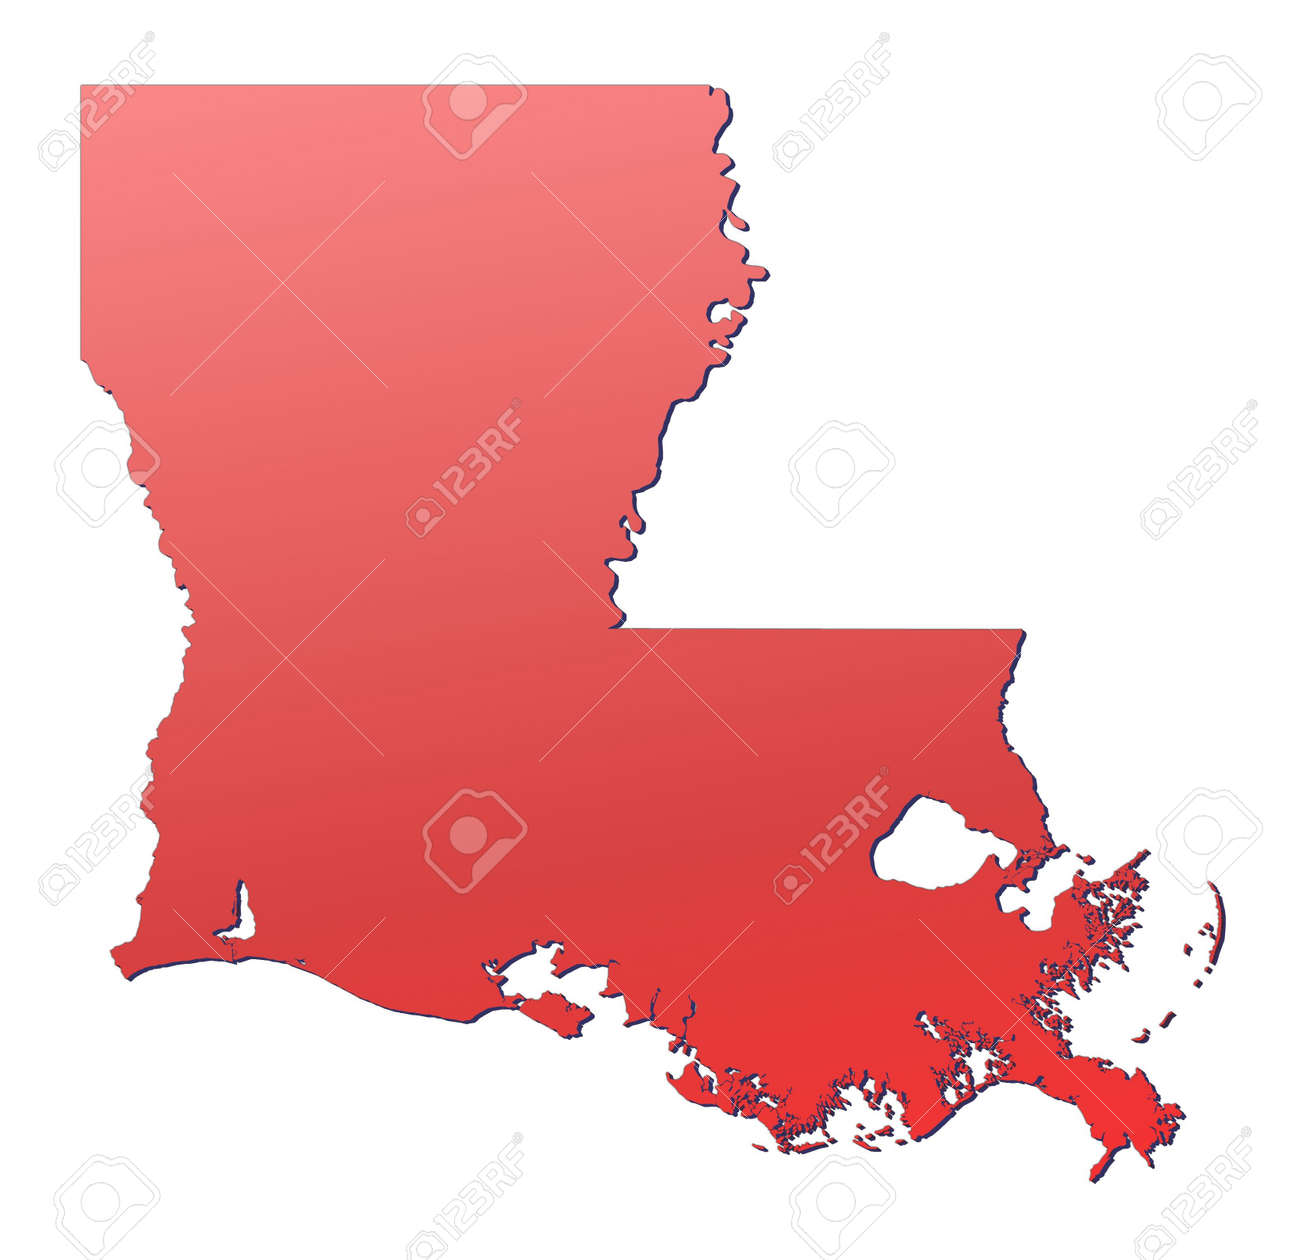 Louisiana Usa Map Filled With Red Gradient Mercator Projection